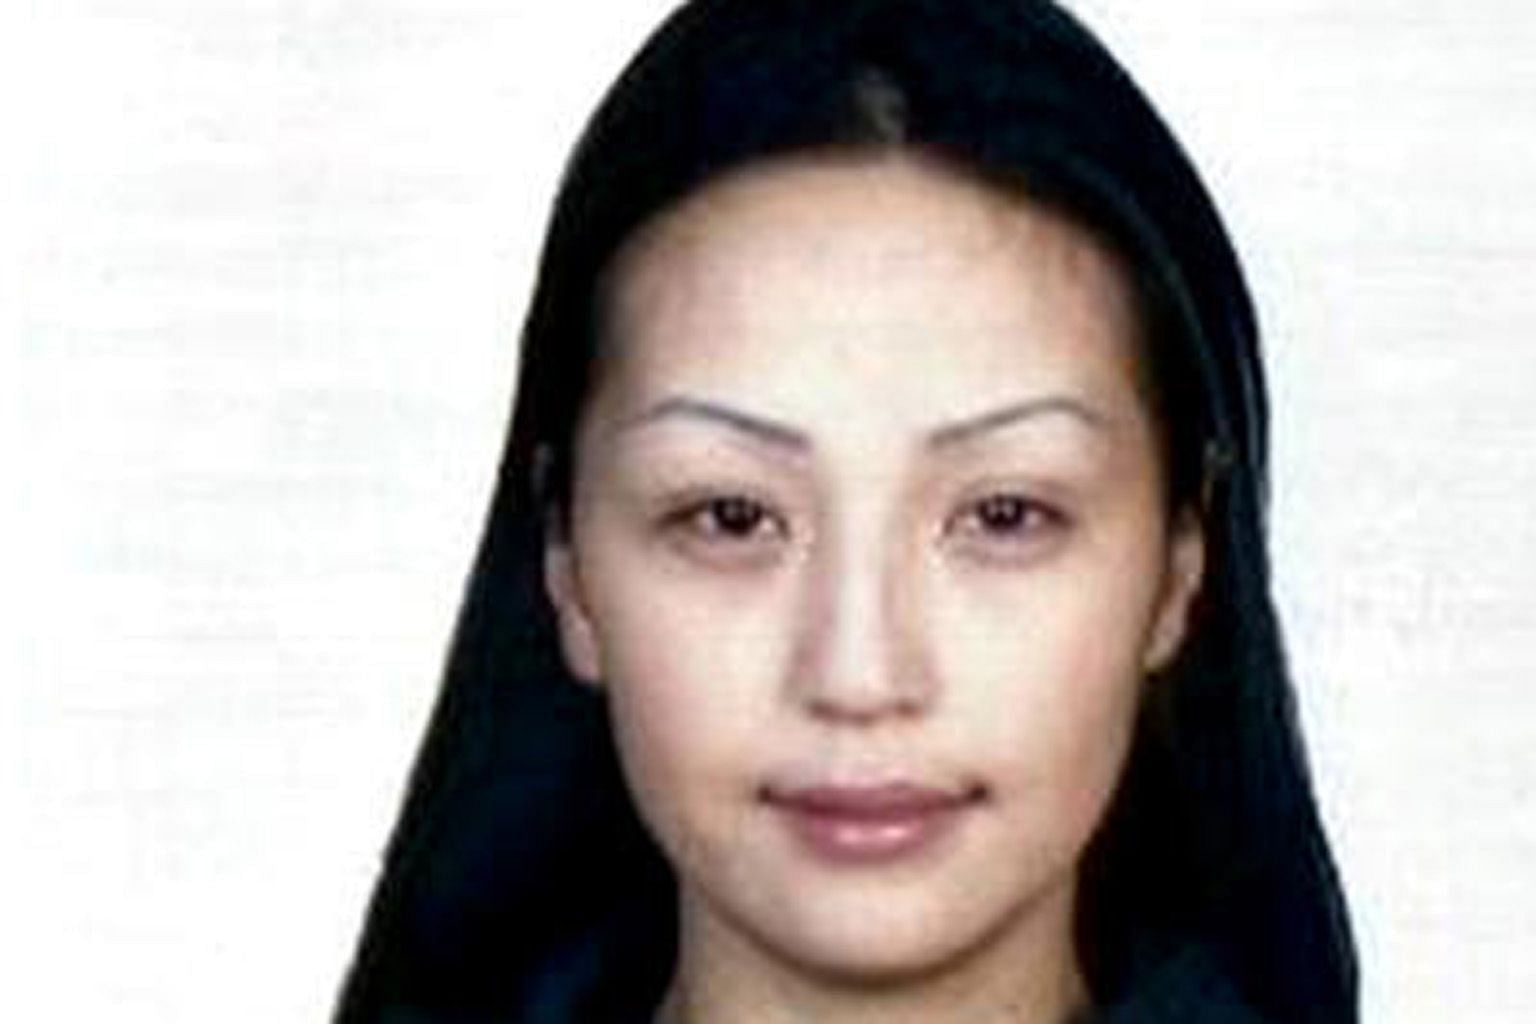 Ms Shaariibuu Altantuya, 28, was killed and blown up with military-grade explosives in a forest on the outskirts of Kuala Lumpur in 2006.